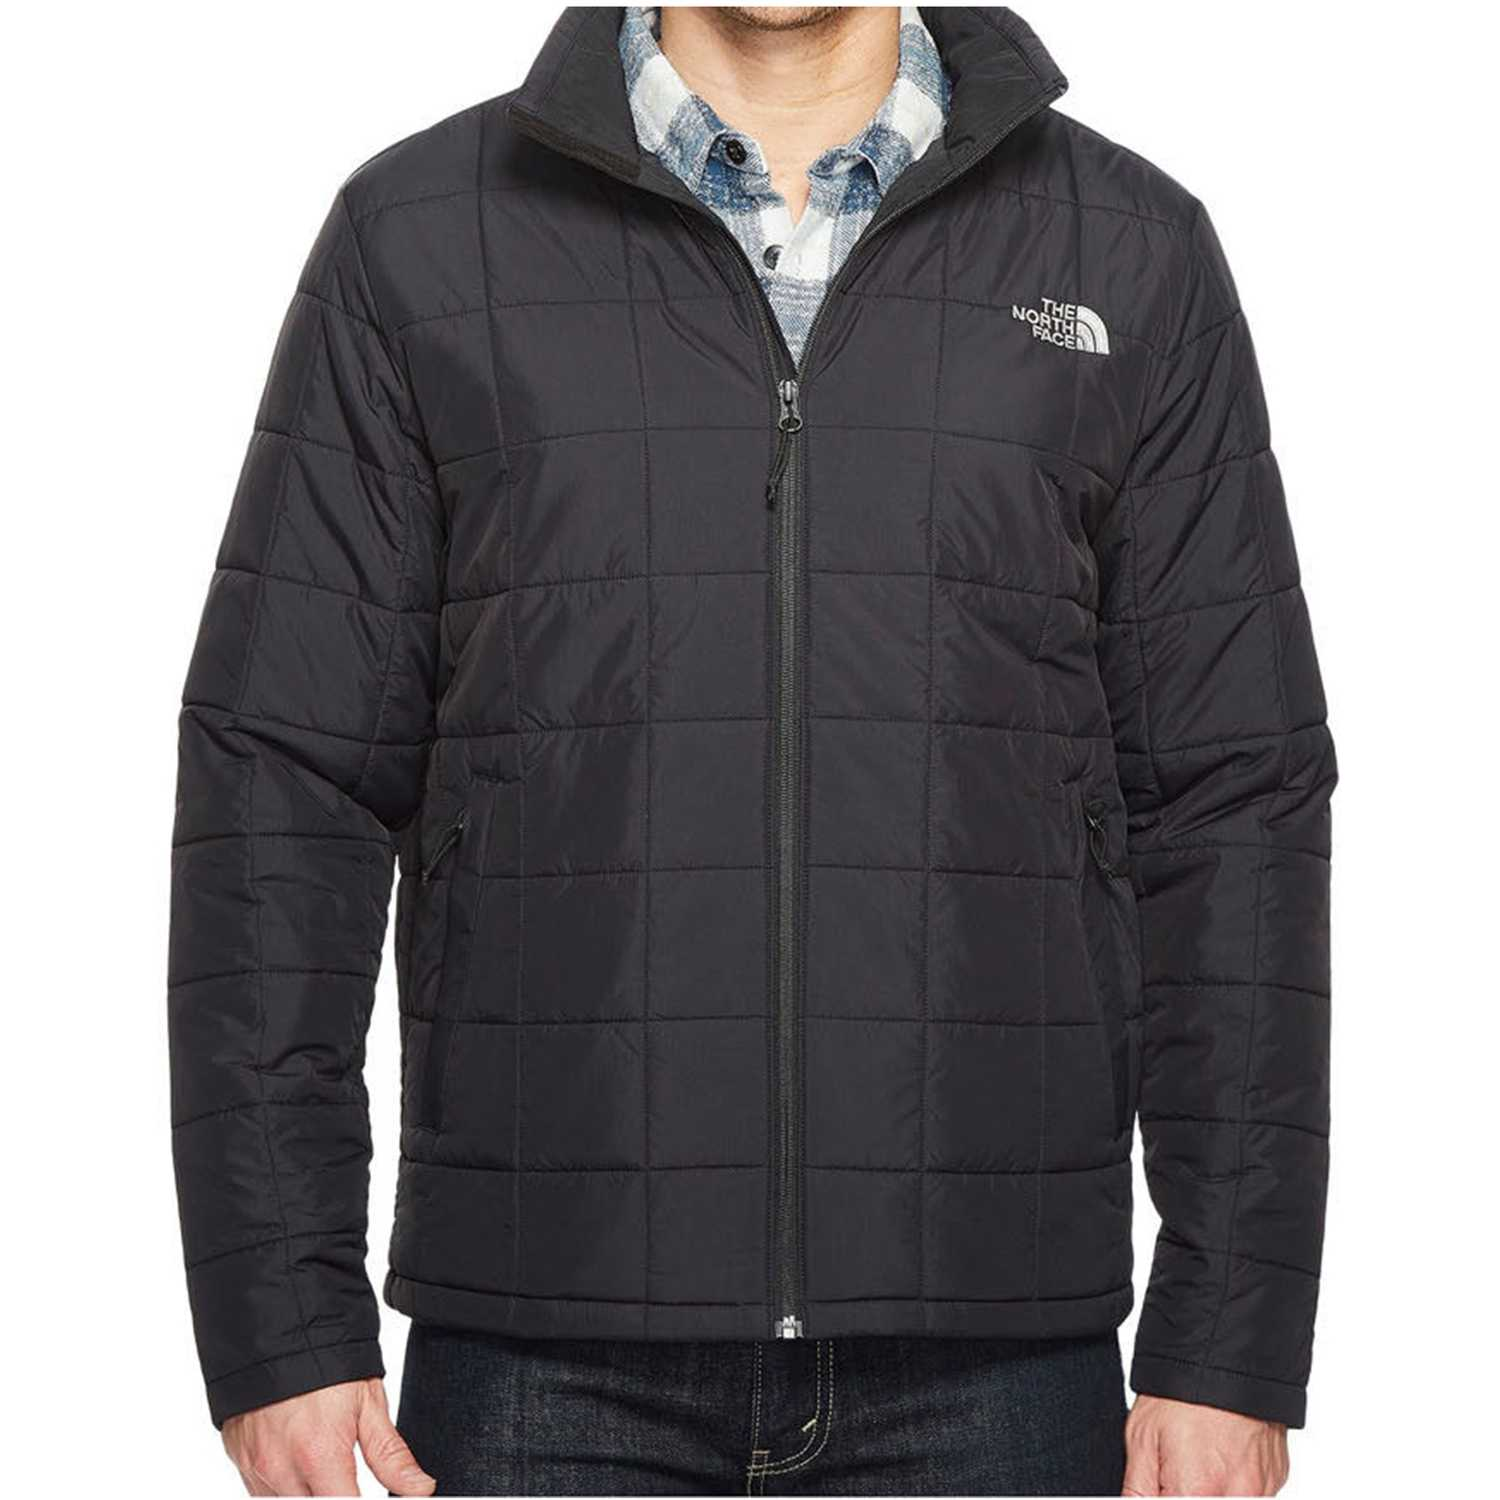 Casaca de Hombre The North Face Negro m harway jacket